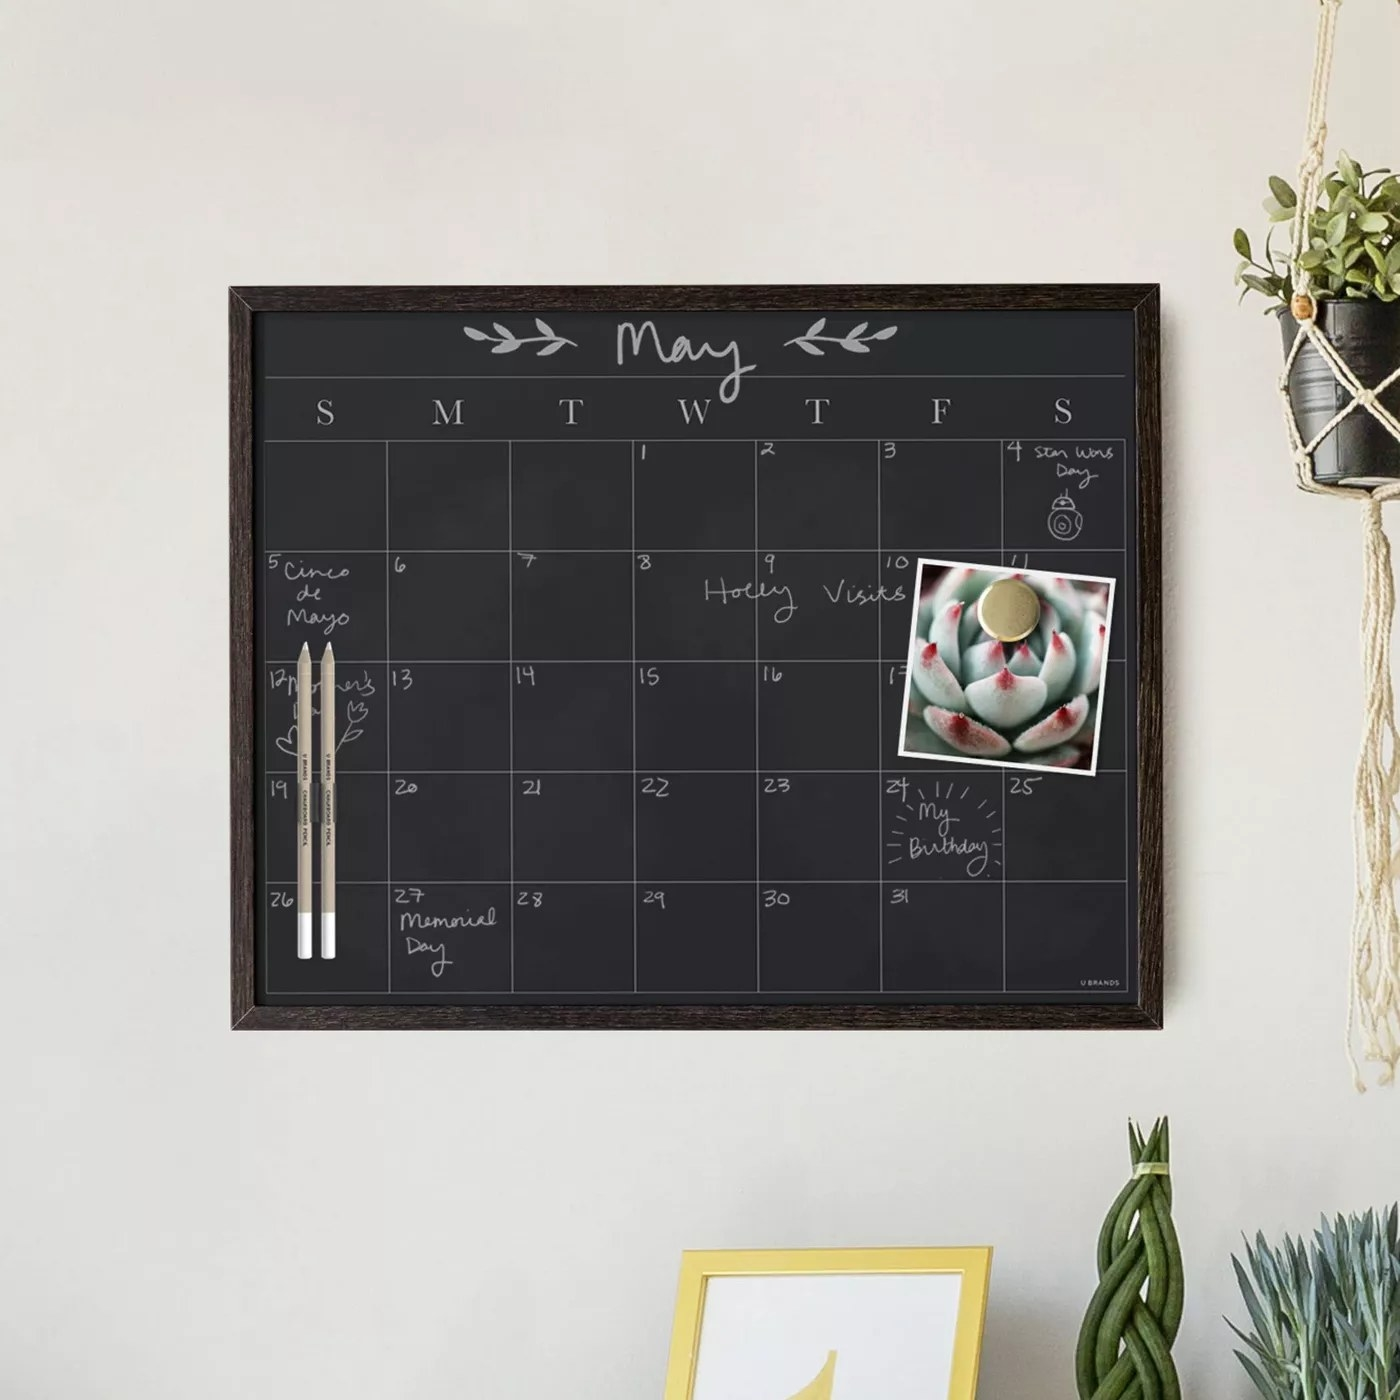 The calendar with its pens hanging on a wall